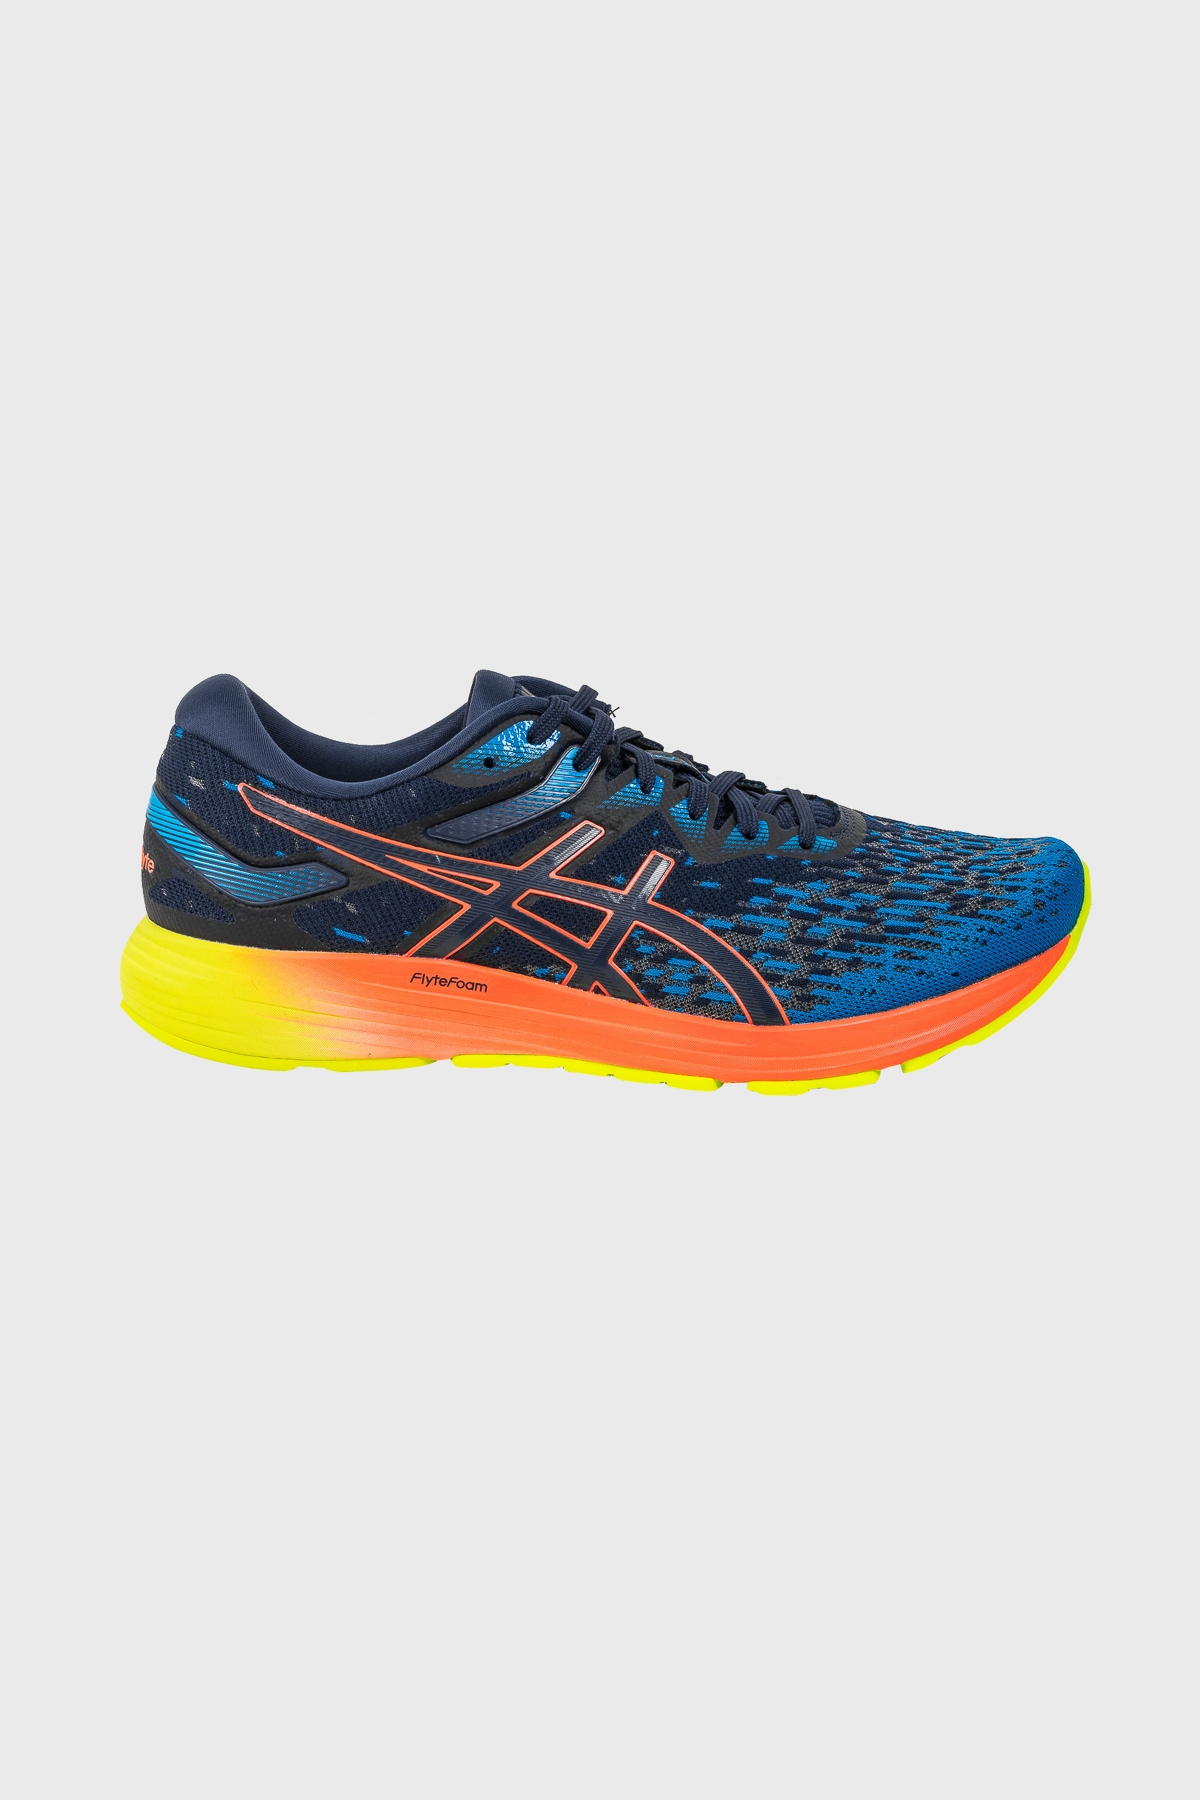 Asics - Dynaflyte 4 - PEACOAT FLASH CORAL